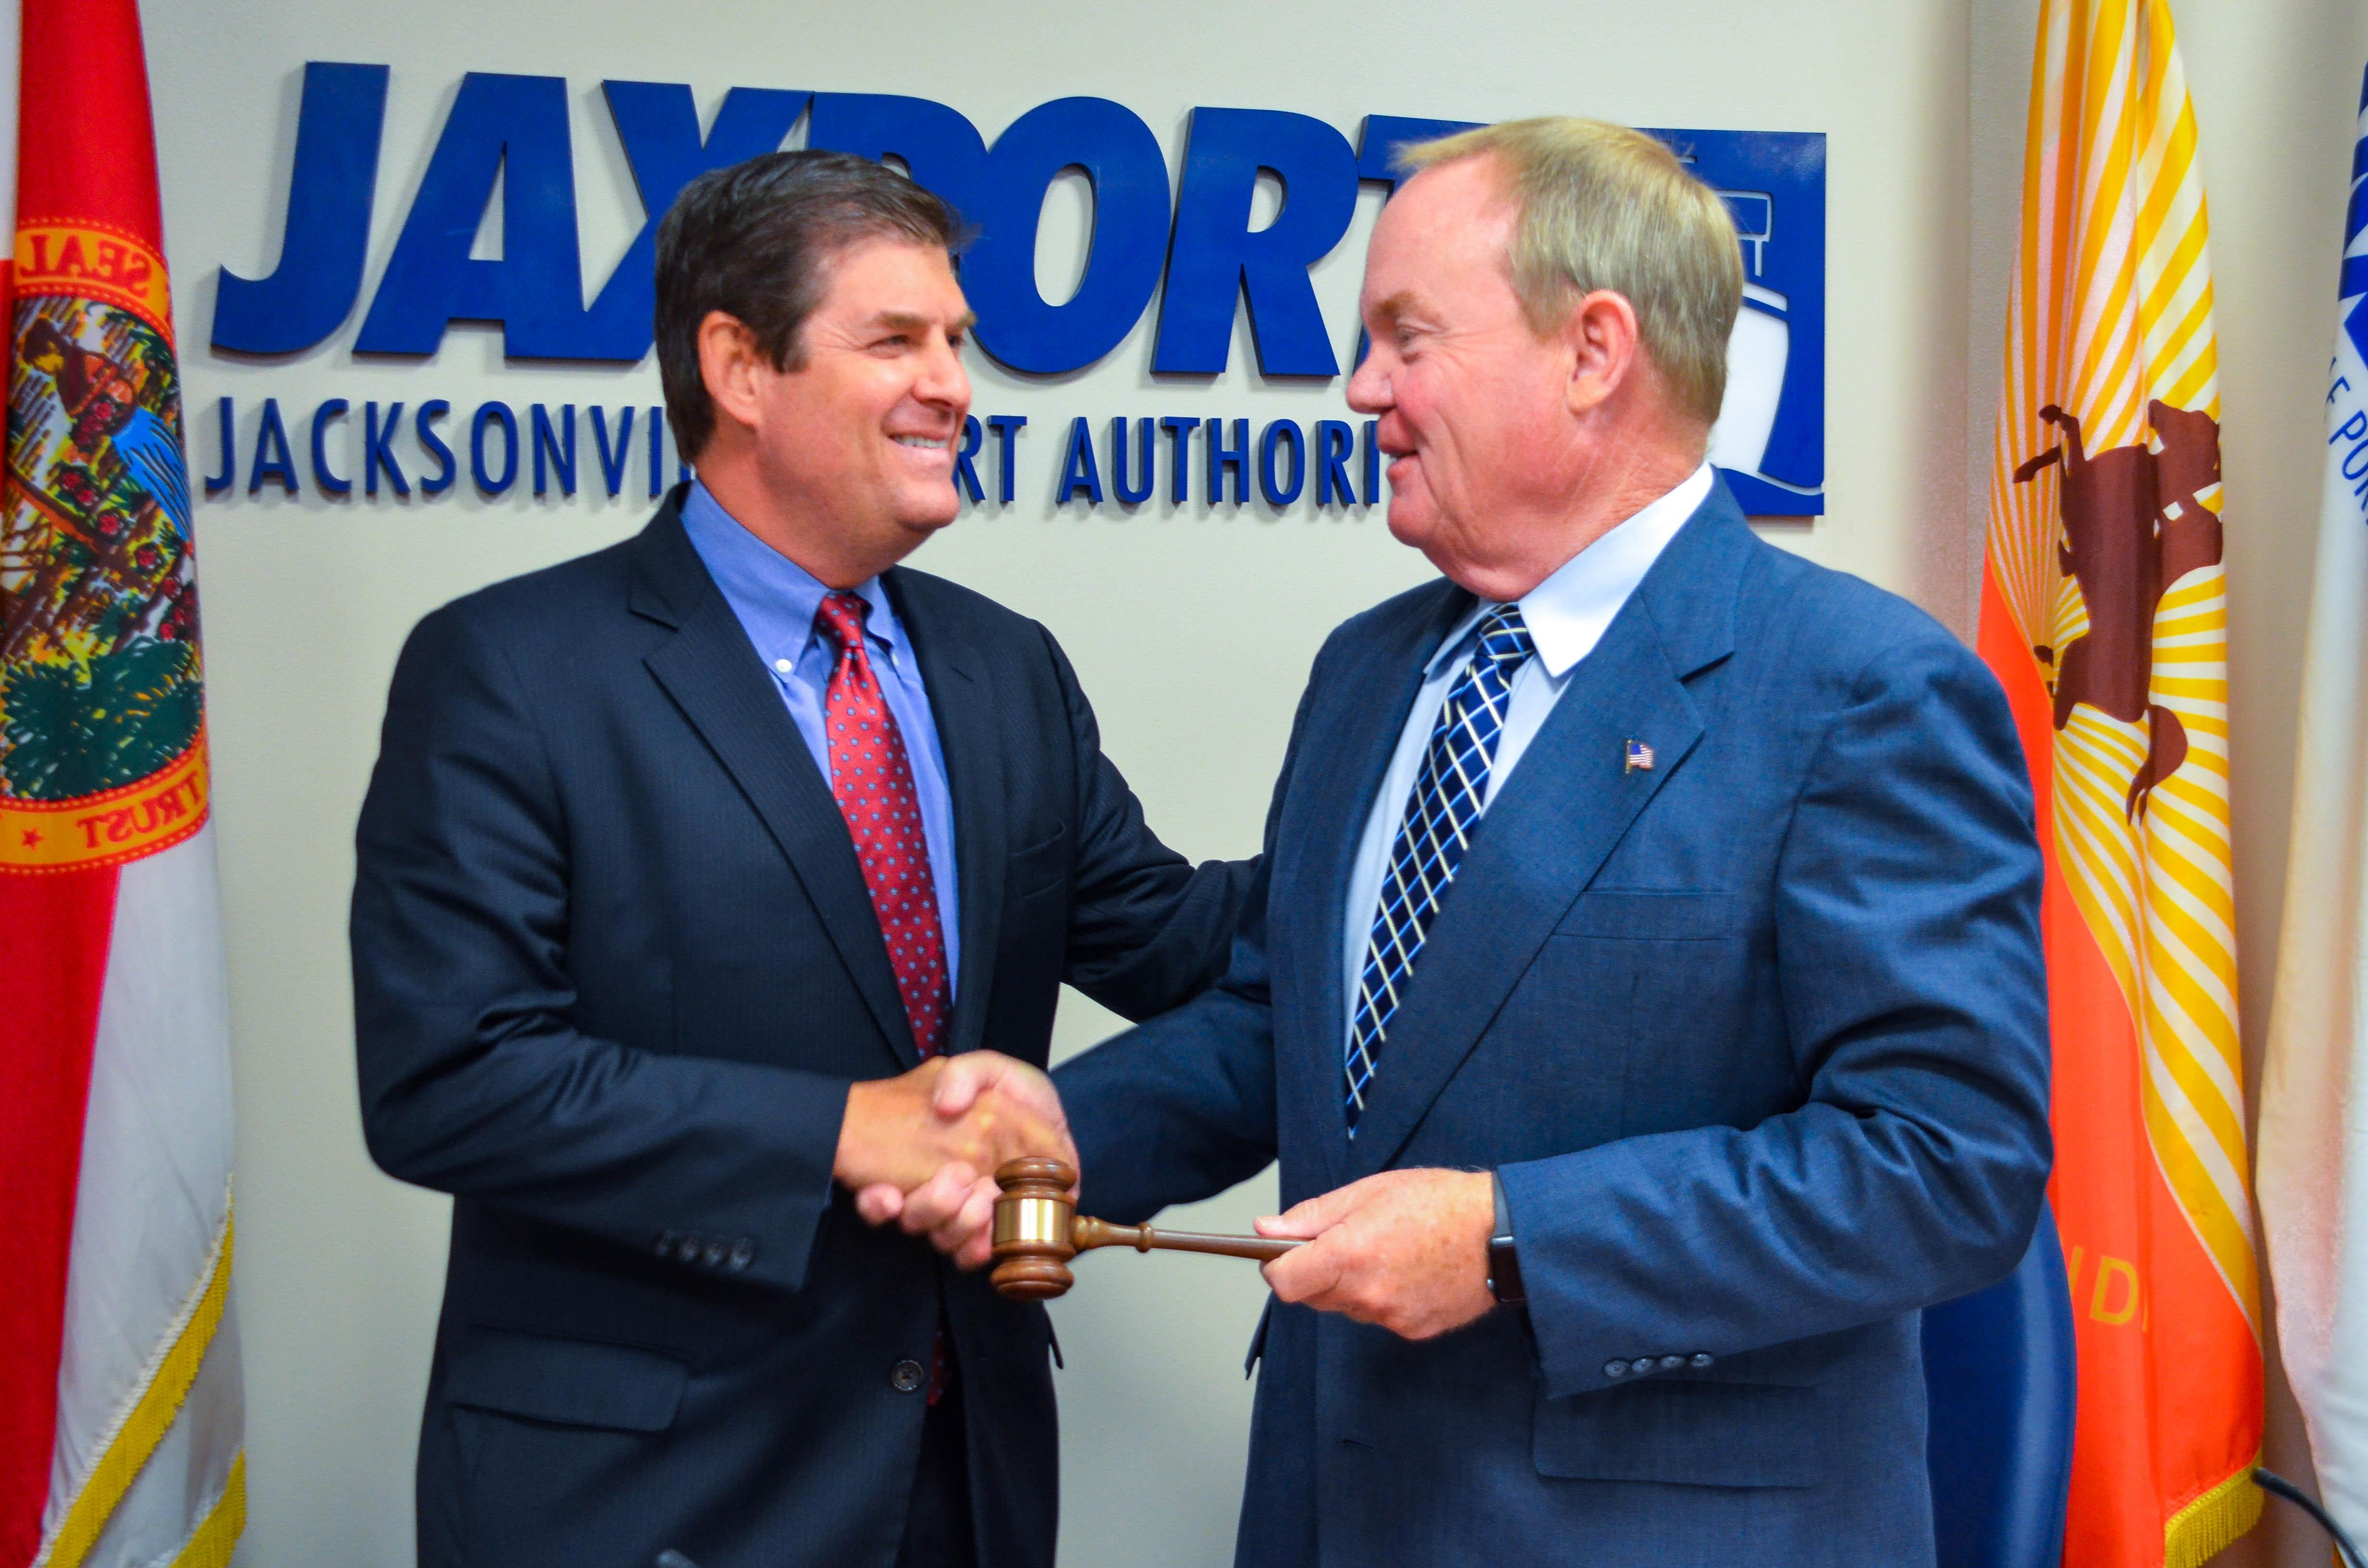 JAXPORT Immediate Past Board Chairman Ed Fleming (right) passes the gavel to incoming Chairman John Falconetti